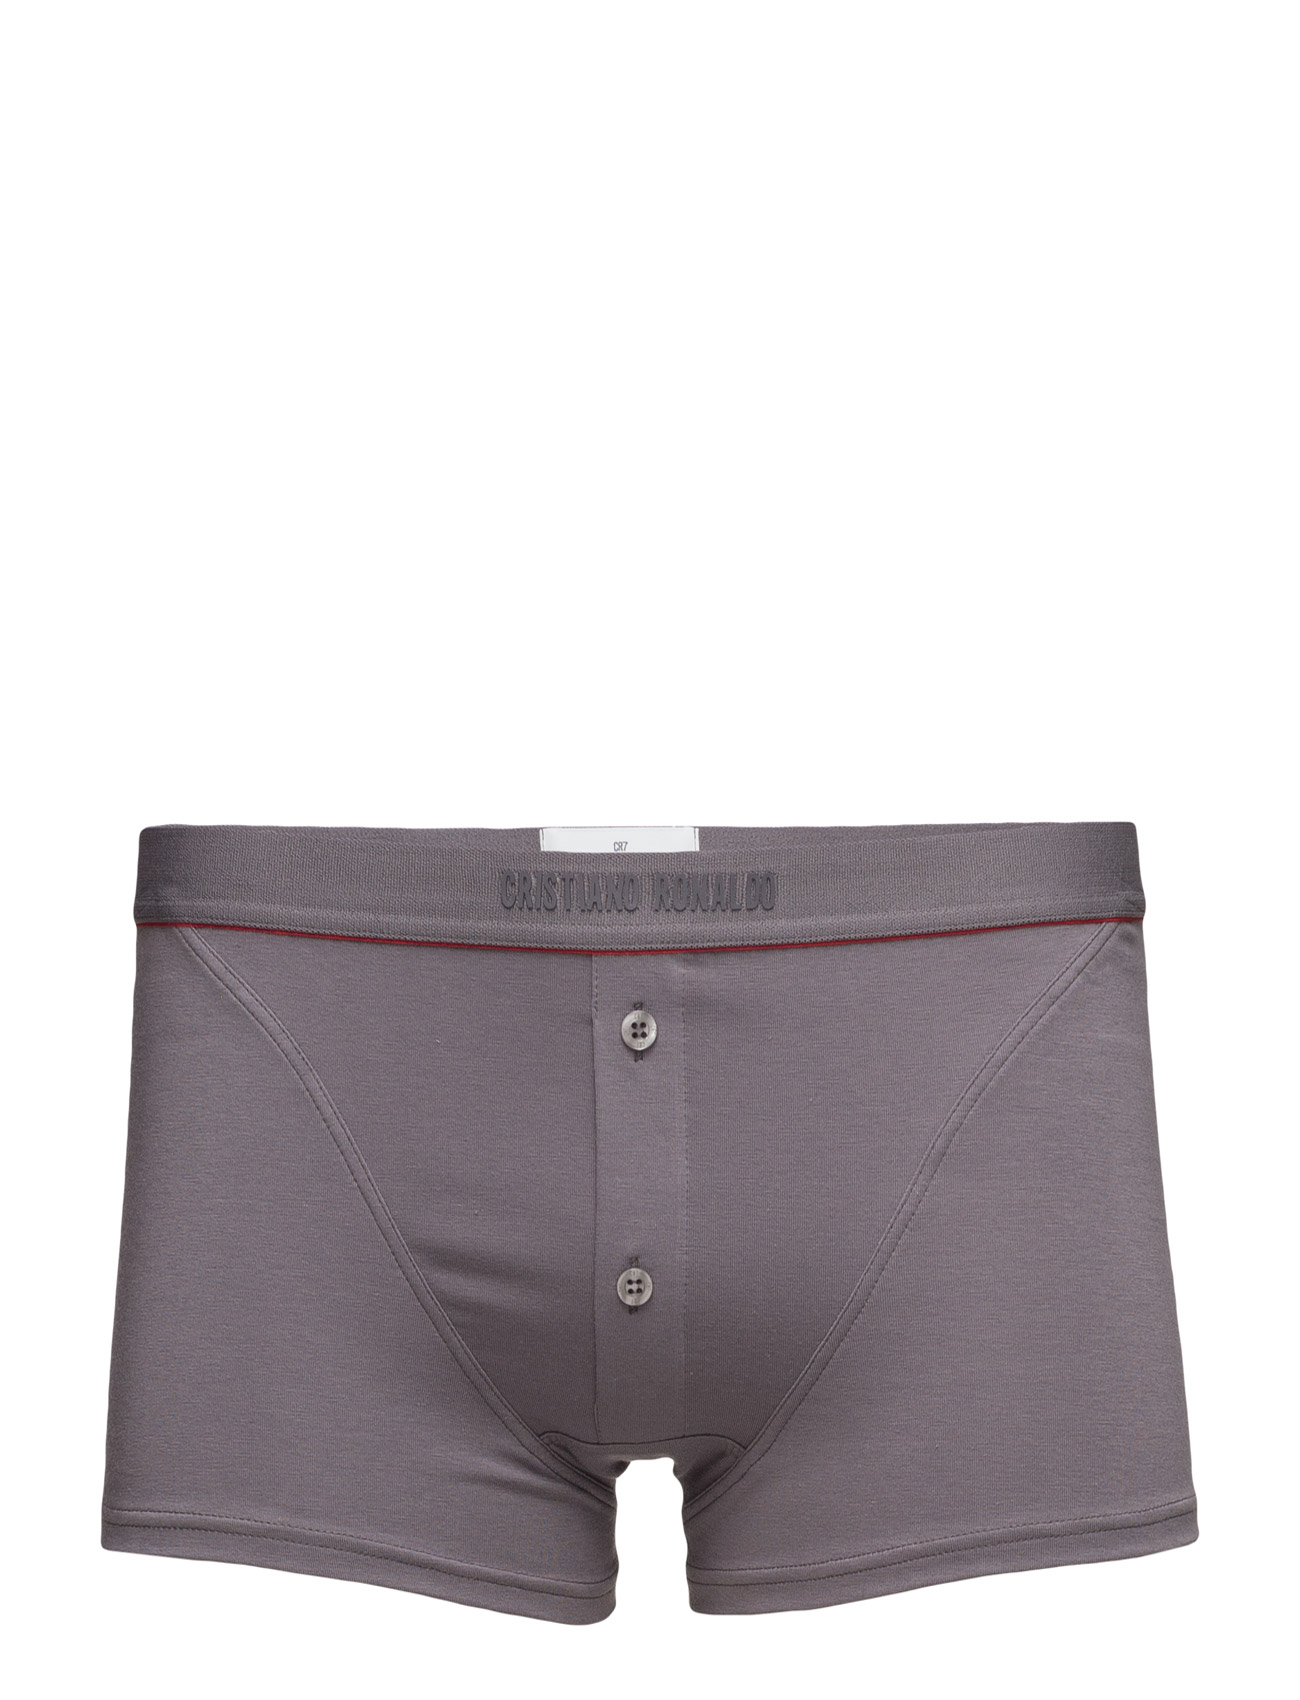 Cr7 Luxury Trunk With Buttons CR7 Boxershorts til Mænd i